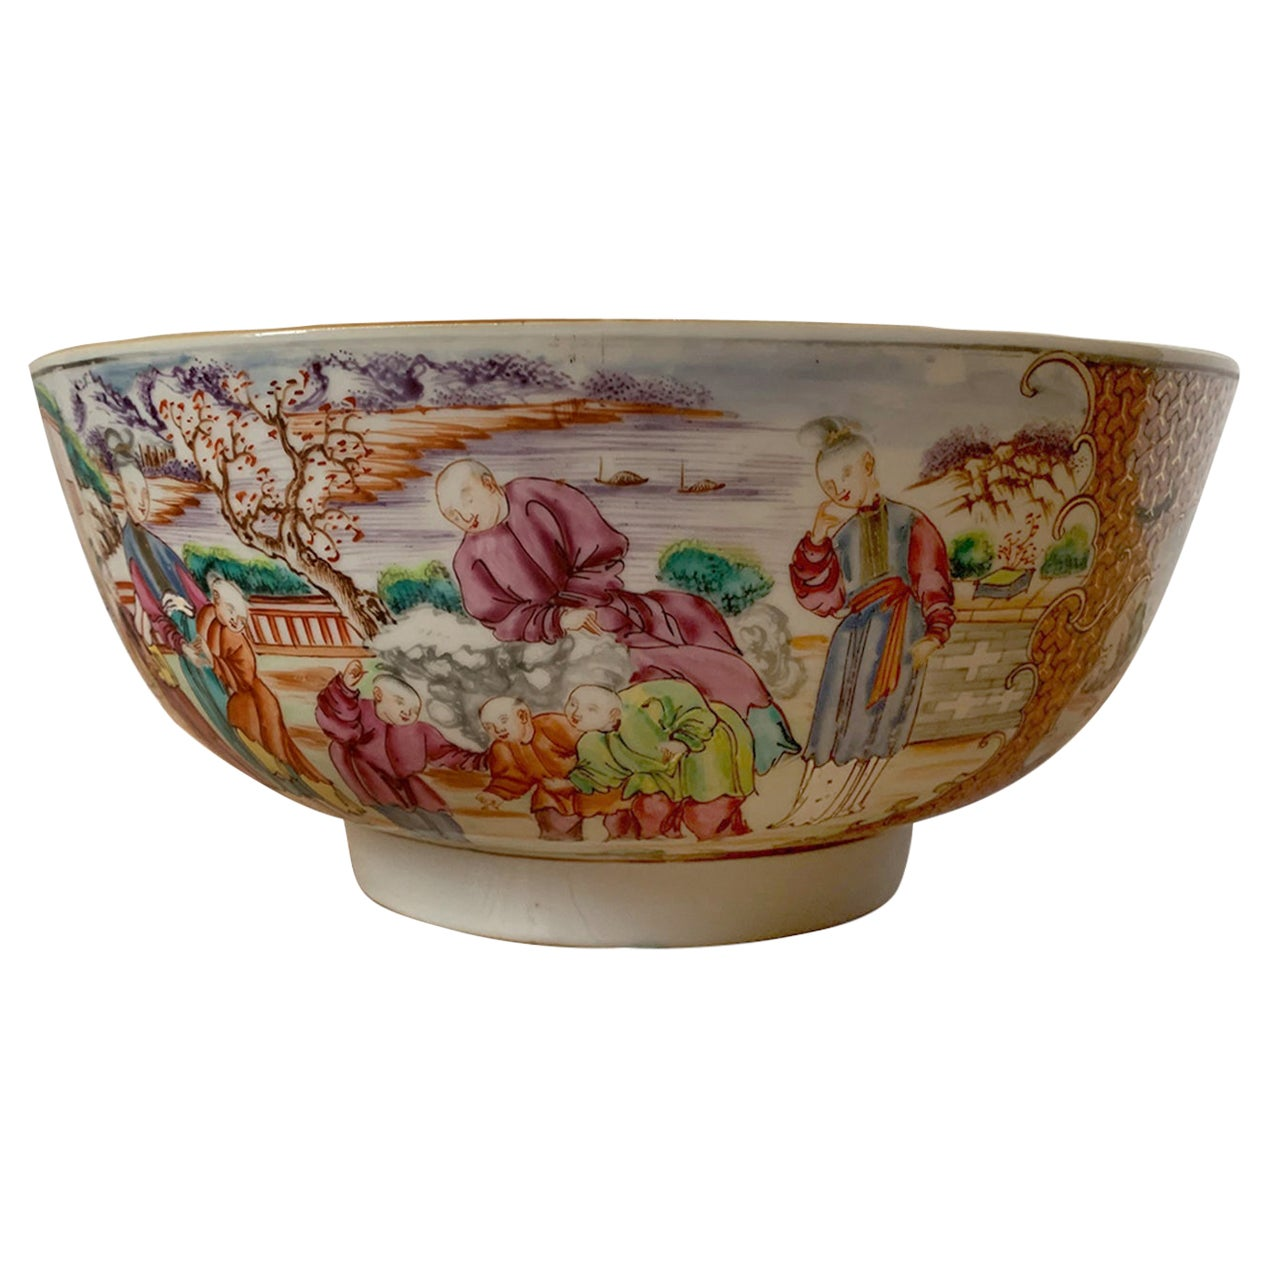 18th-19th Century Chinese Export Porcelain Punch Bowl, Unmarked